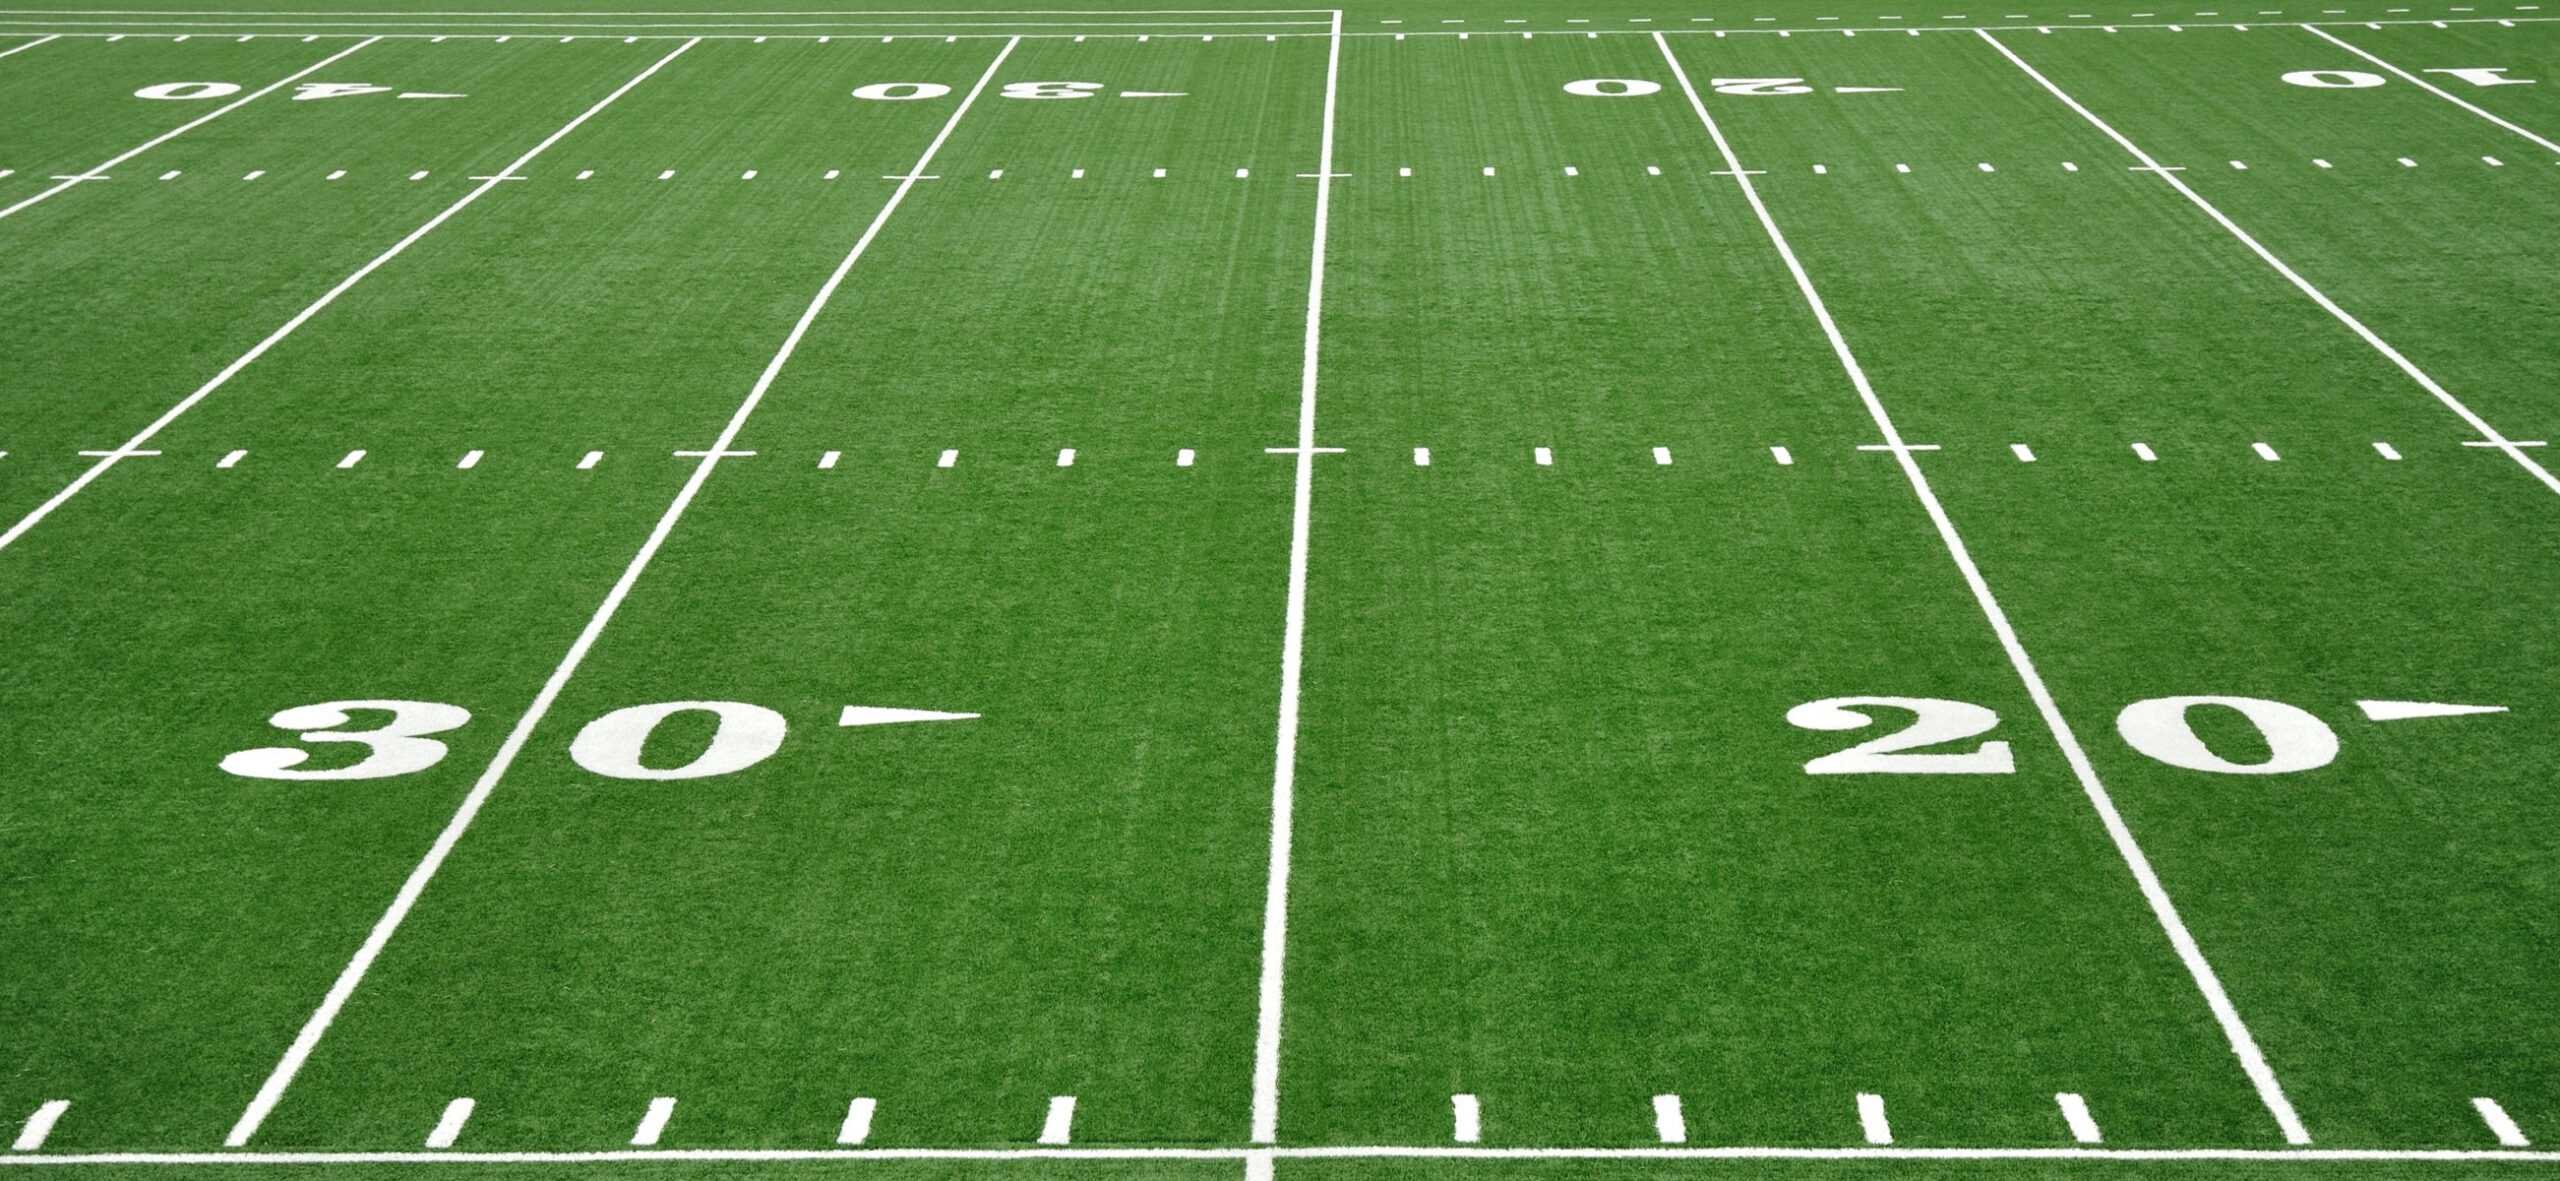 Football Field Blank Template - Imgflip For Blank Football Field Template